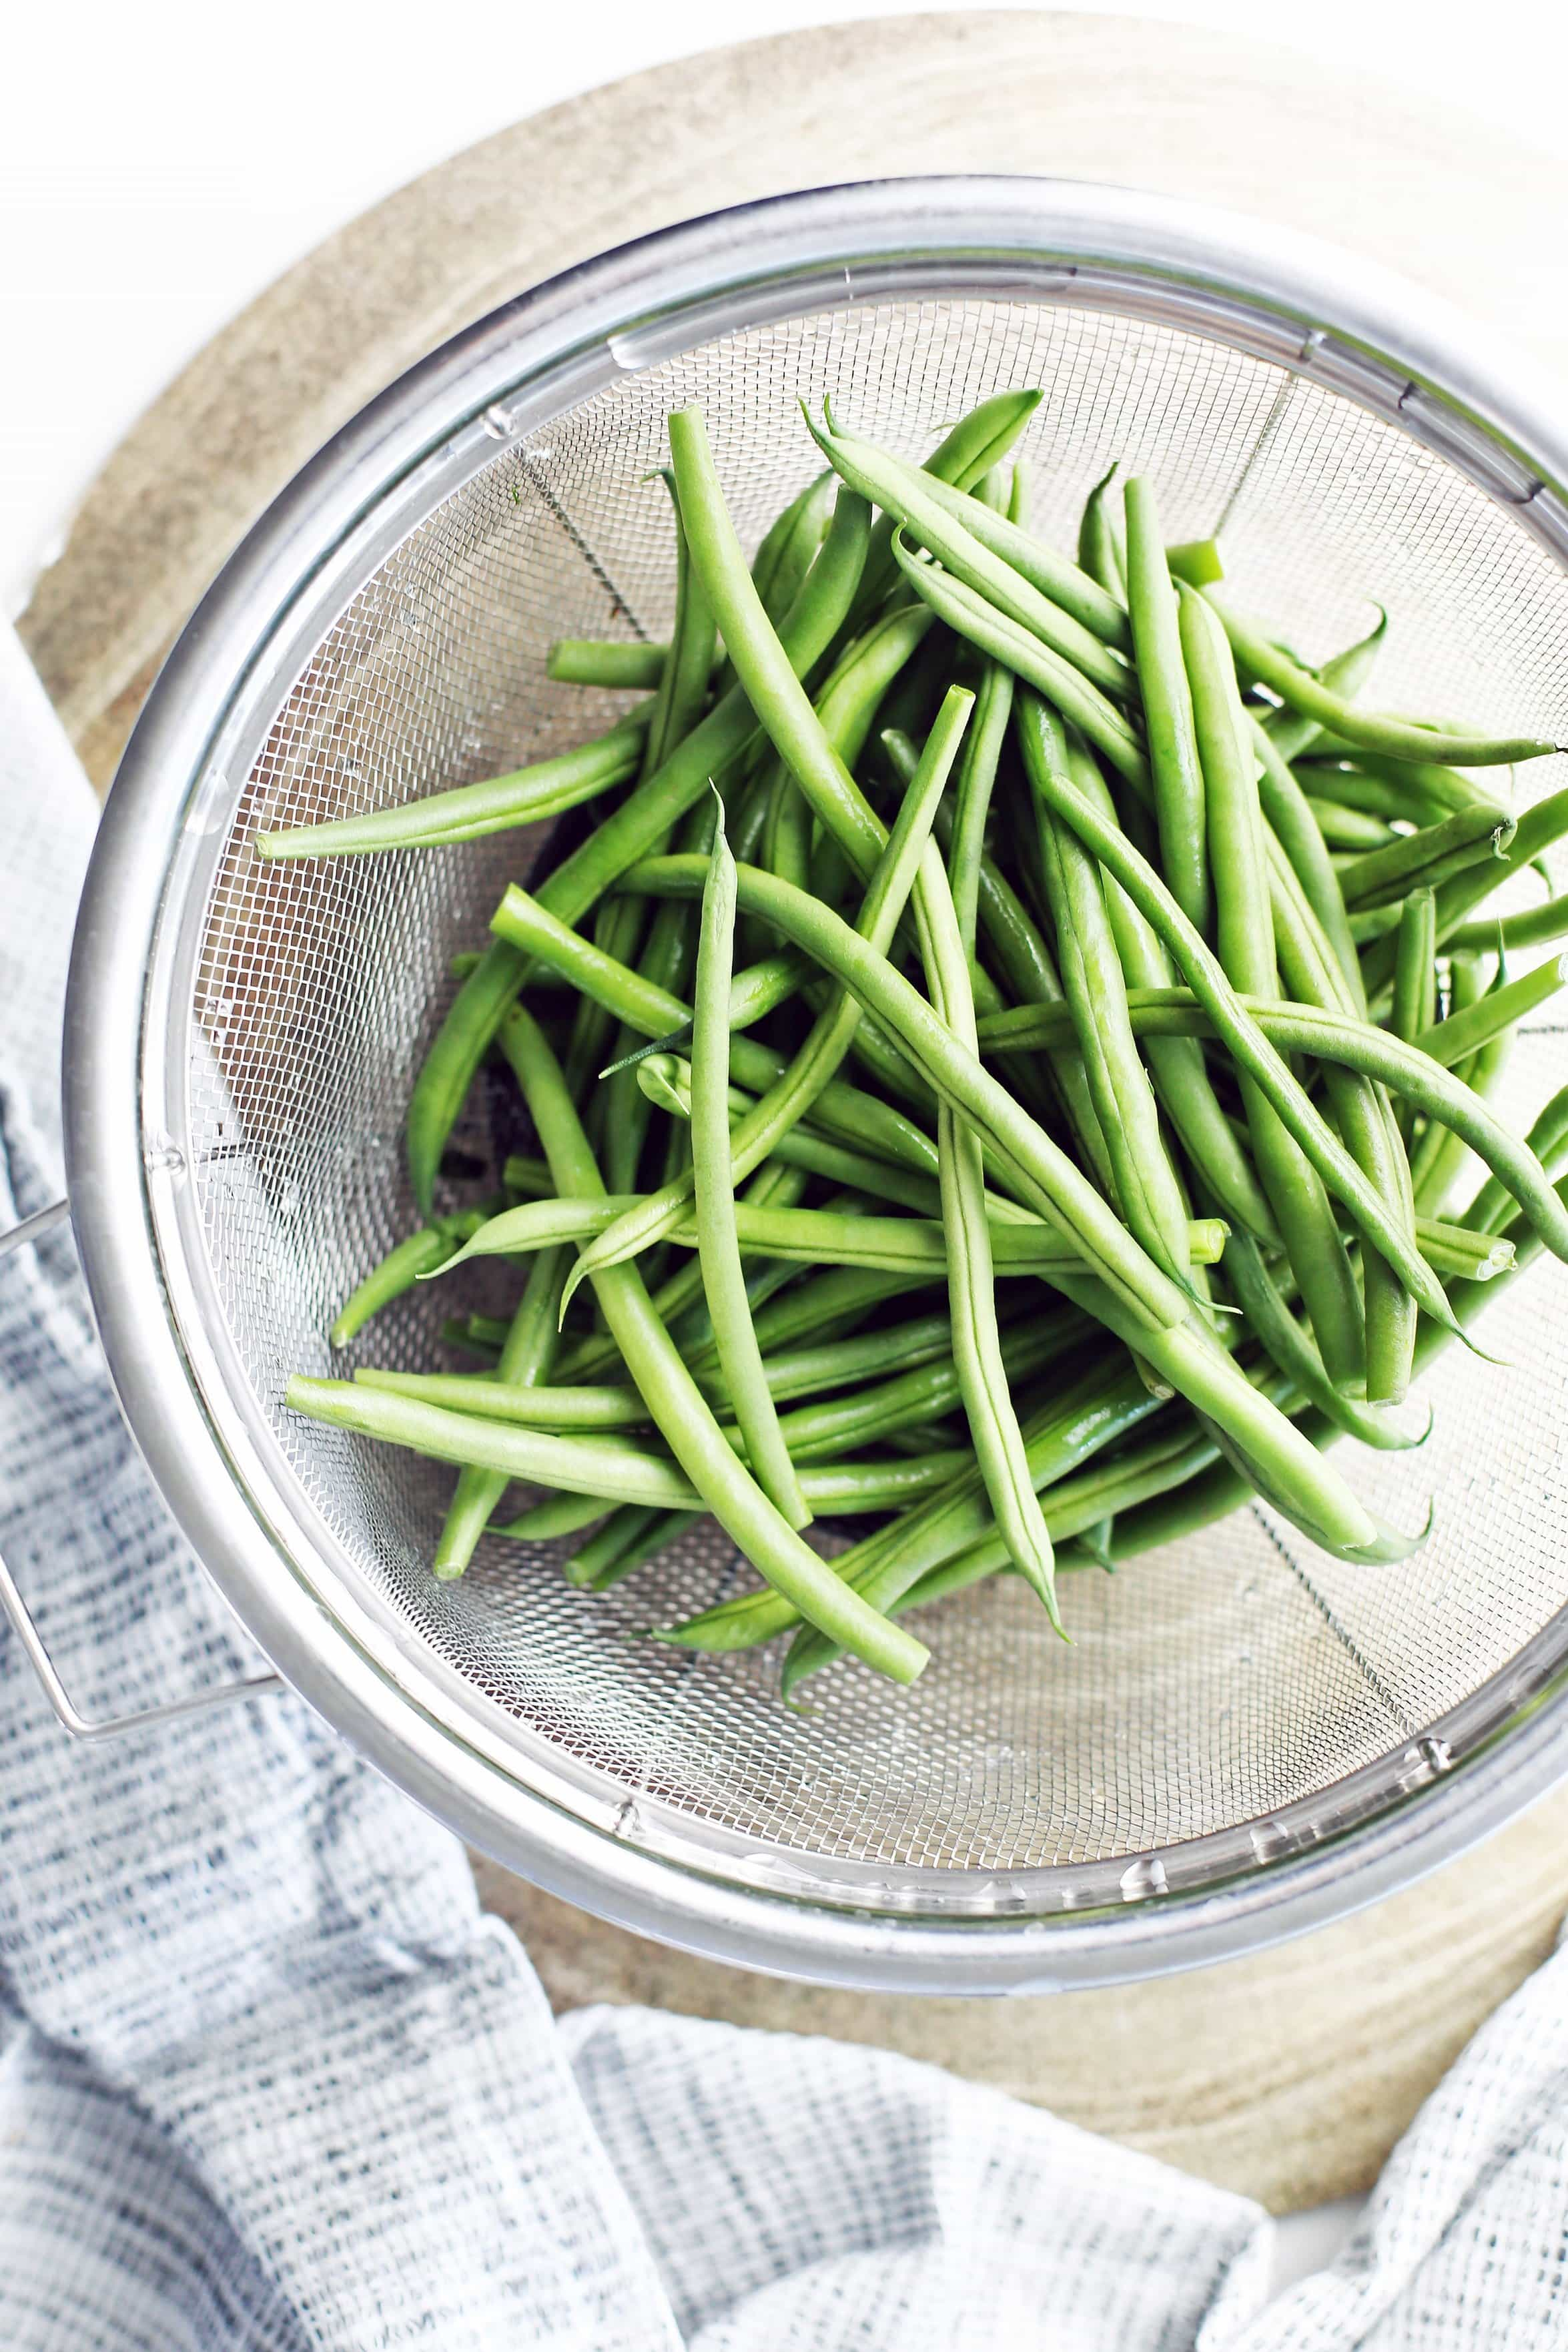 Overhead view of rinsed and trimmed French green beans in large metal mesh strainer.